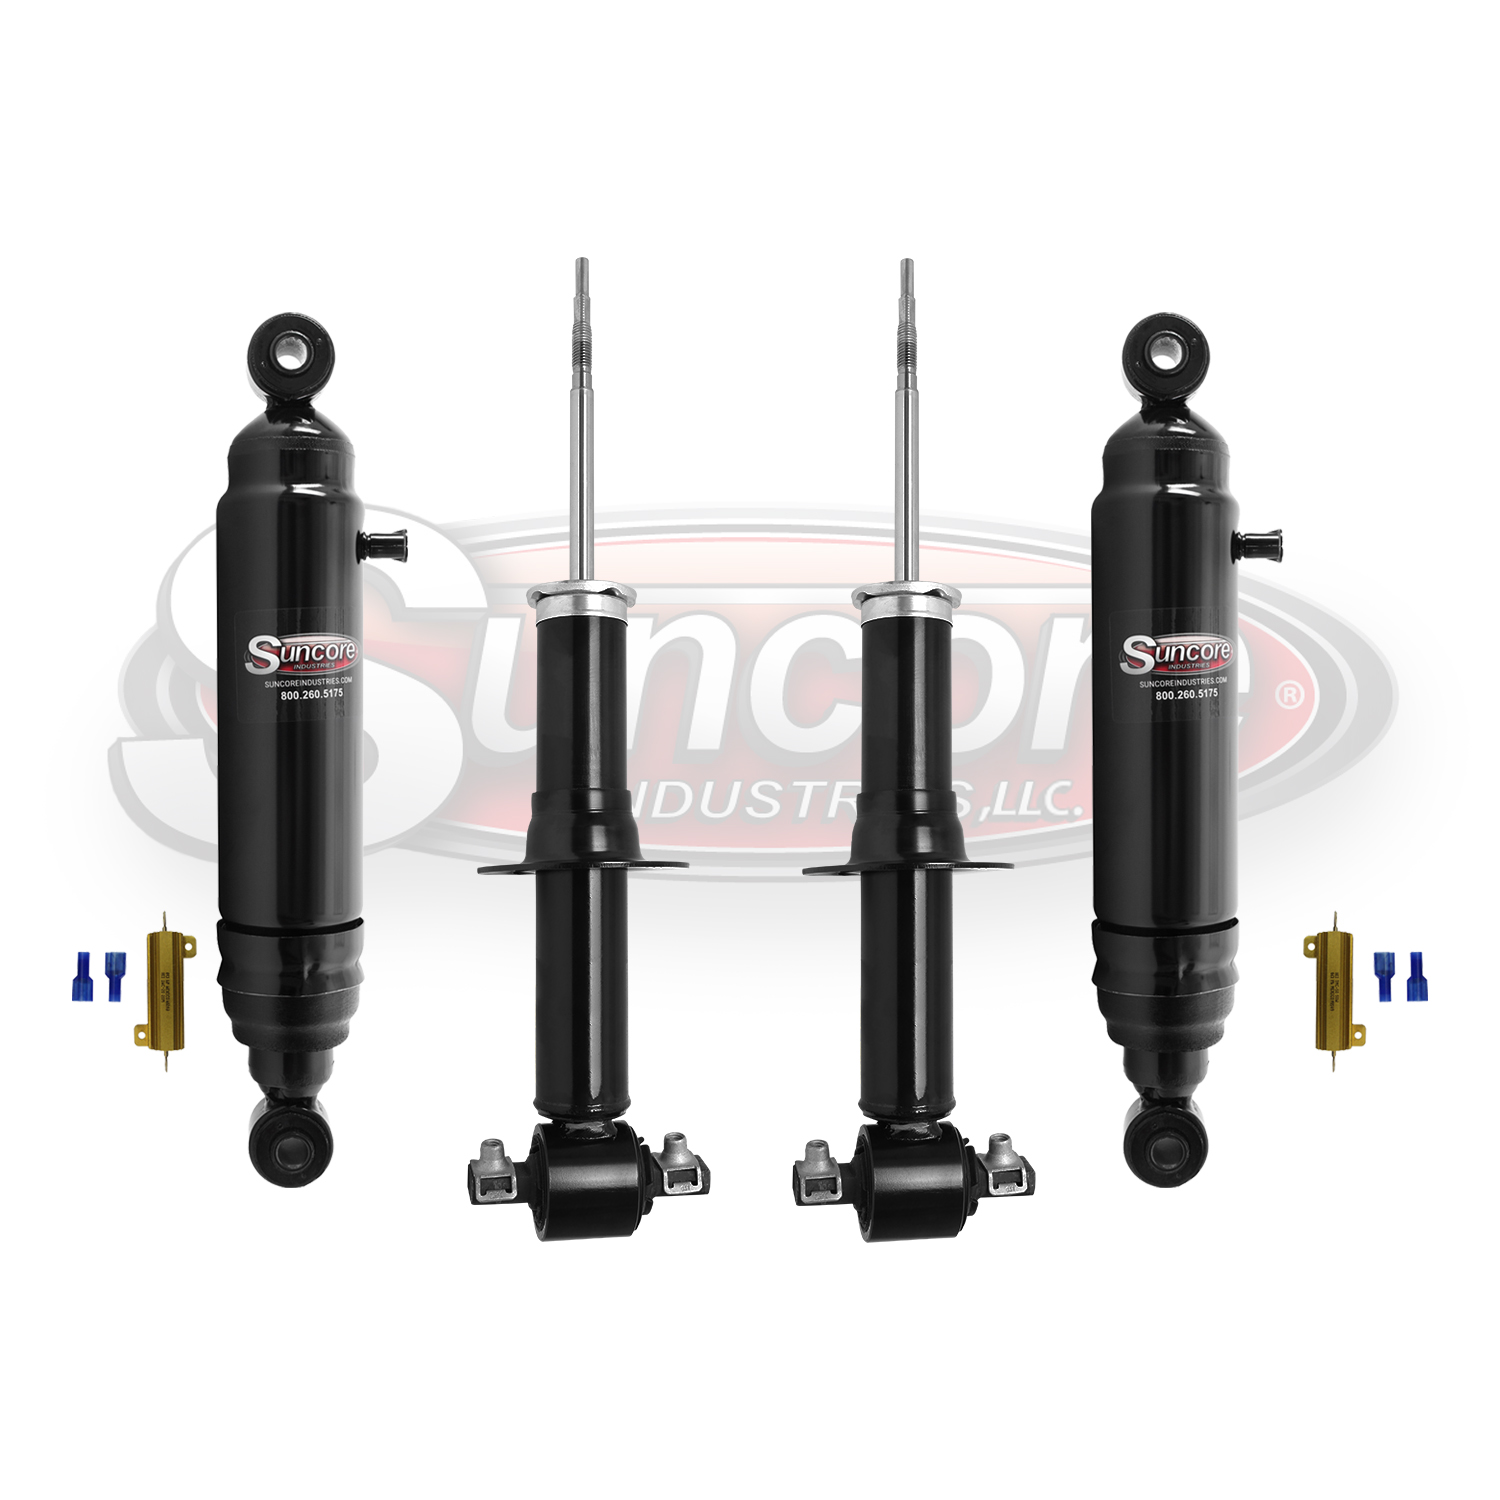 Electronic Active Suspension to Passive Gas & Air Shock Absorber Conversion Kit - GMC, Cadillac & Chevy